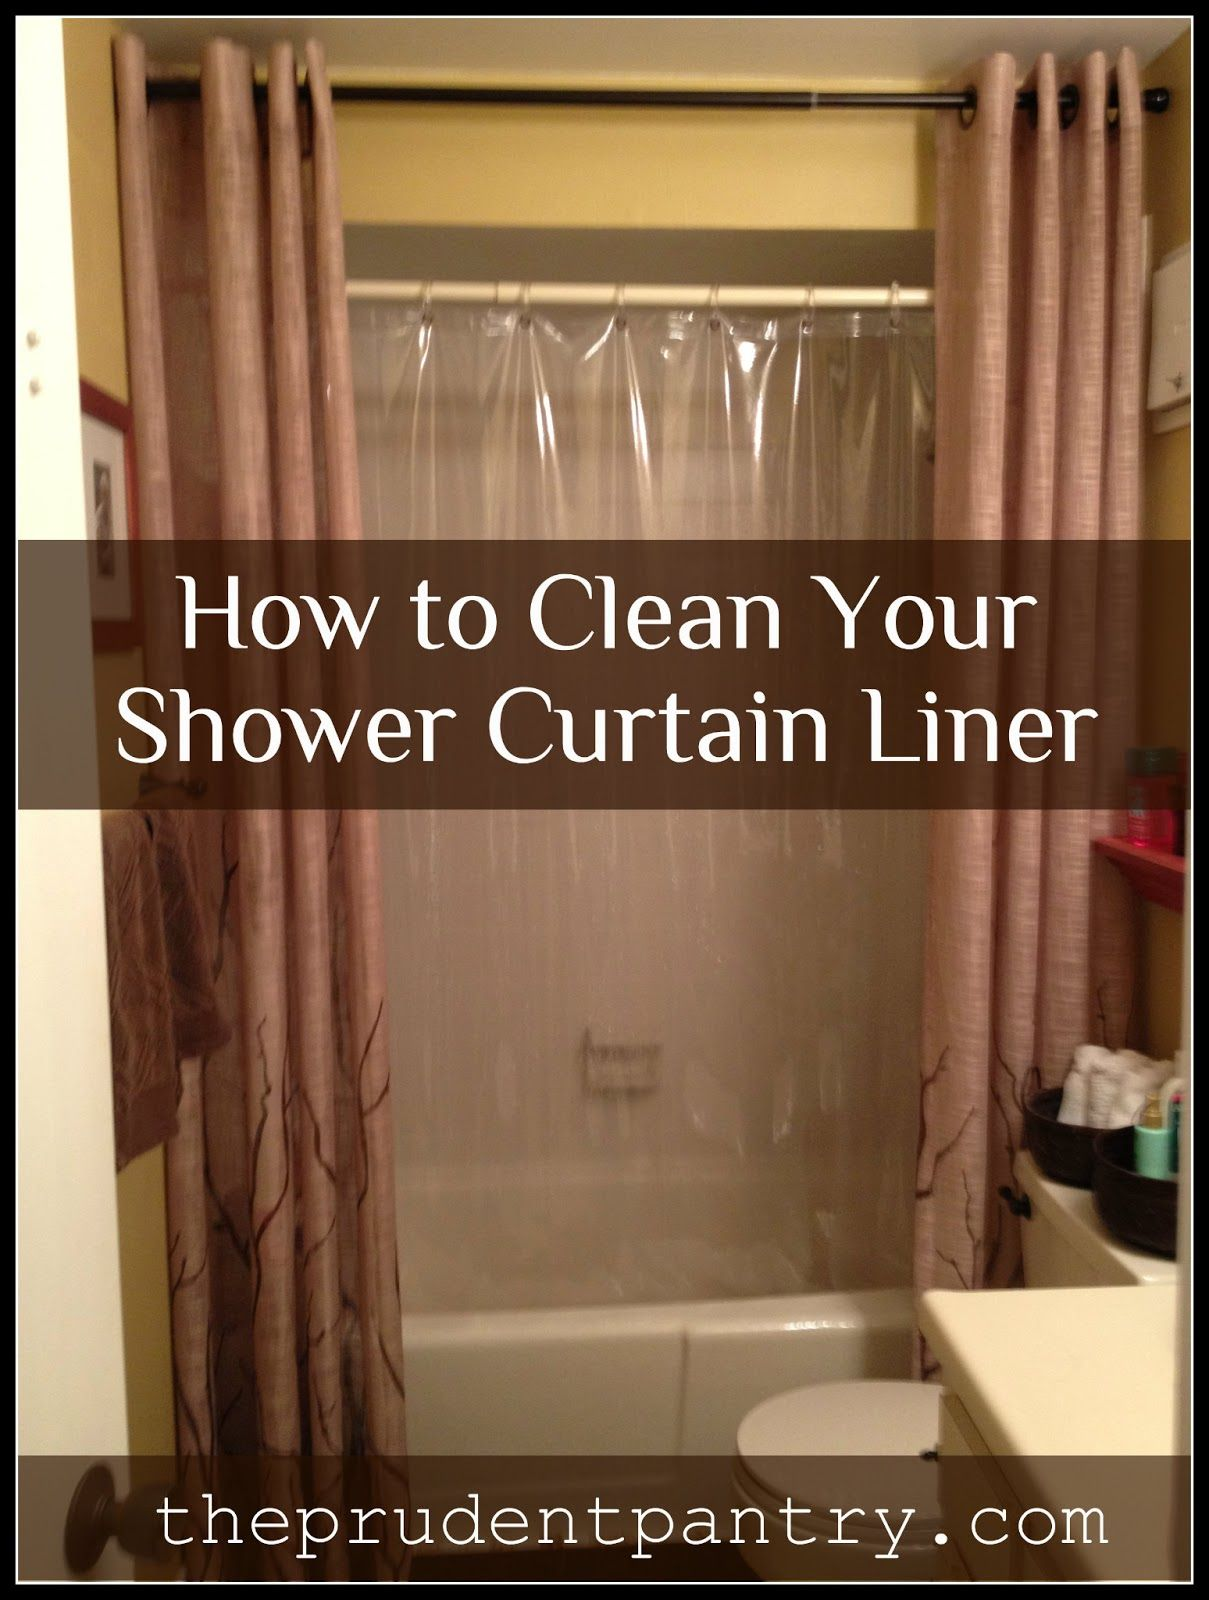 The Prudent Pantry How To Clean Your Shower Curtain Liner Clean Shower Curtains Plastic Shower Curtain Clean Shower Curtain Liner